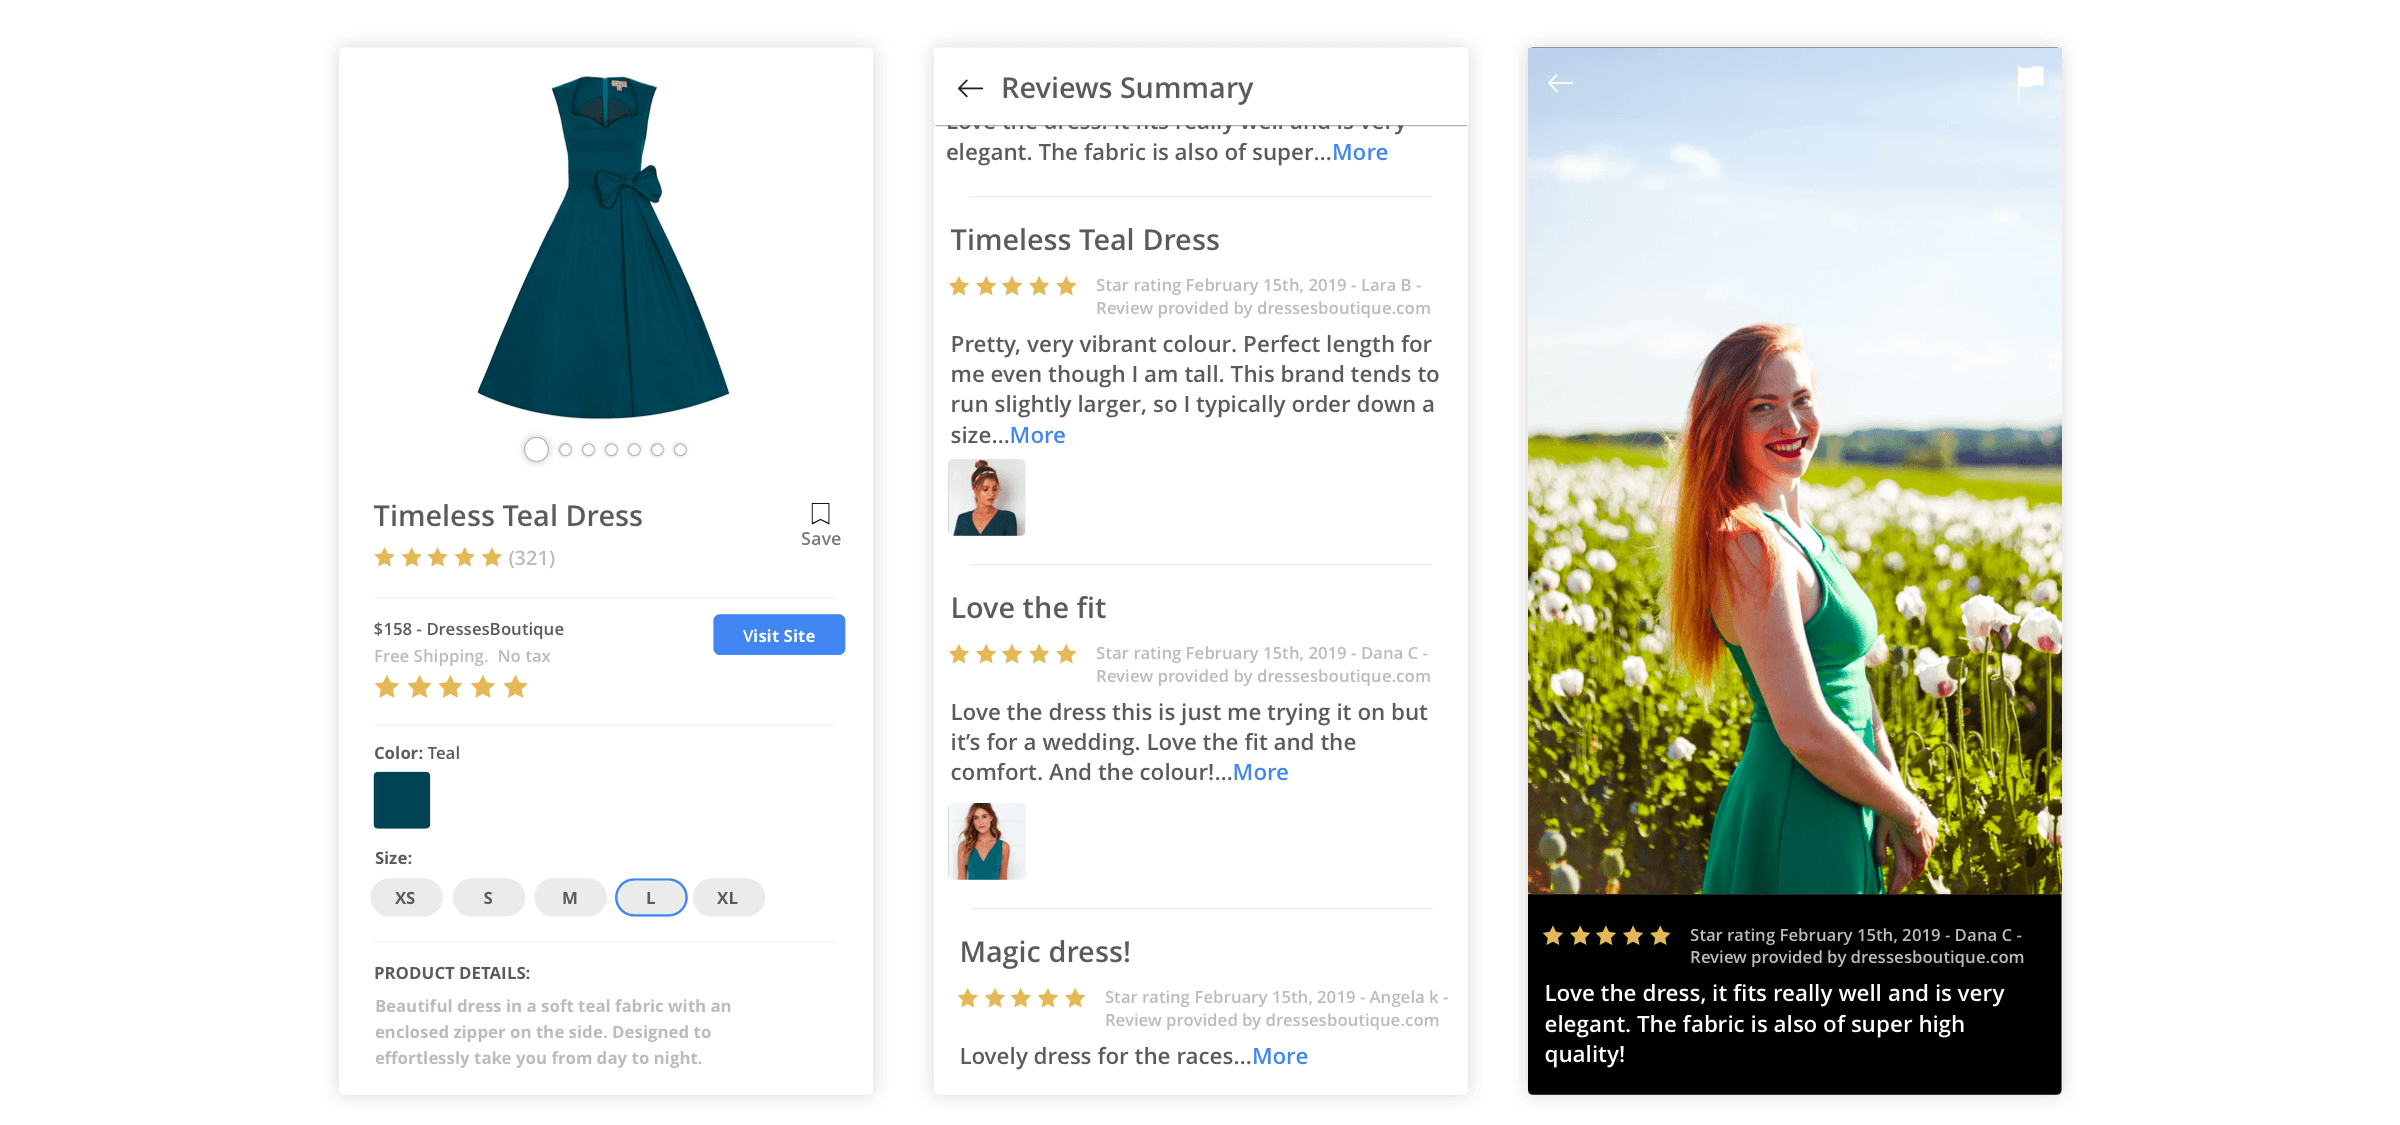 Google News Digest: Maverick, New Ads Features, Users' Photos in Shopping, and More. Image 3